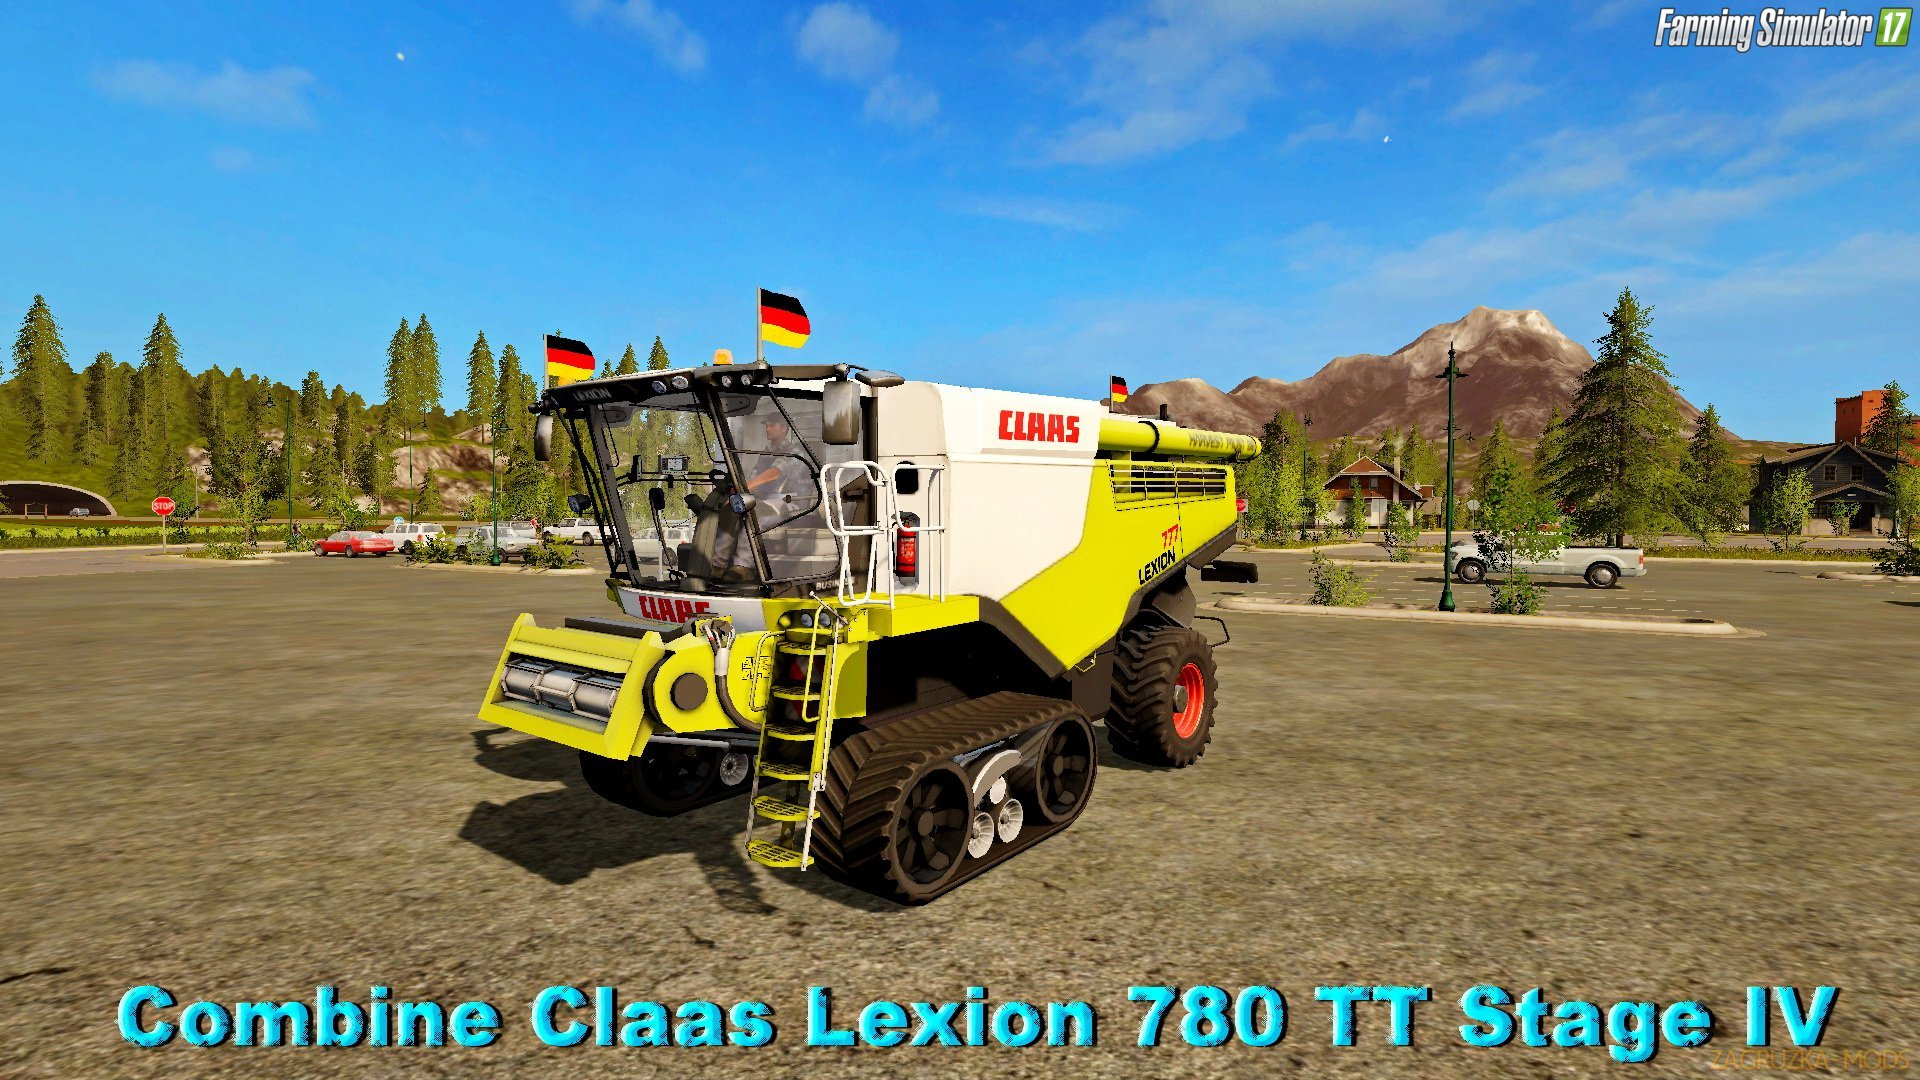 Claas Lexion 780 TT Stage IV v1.0 (Beta Version) for FS 17